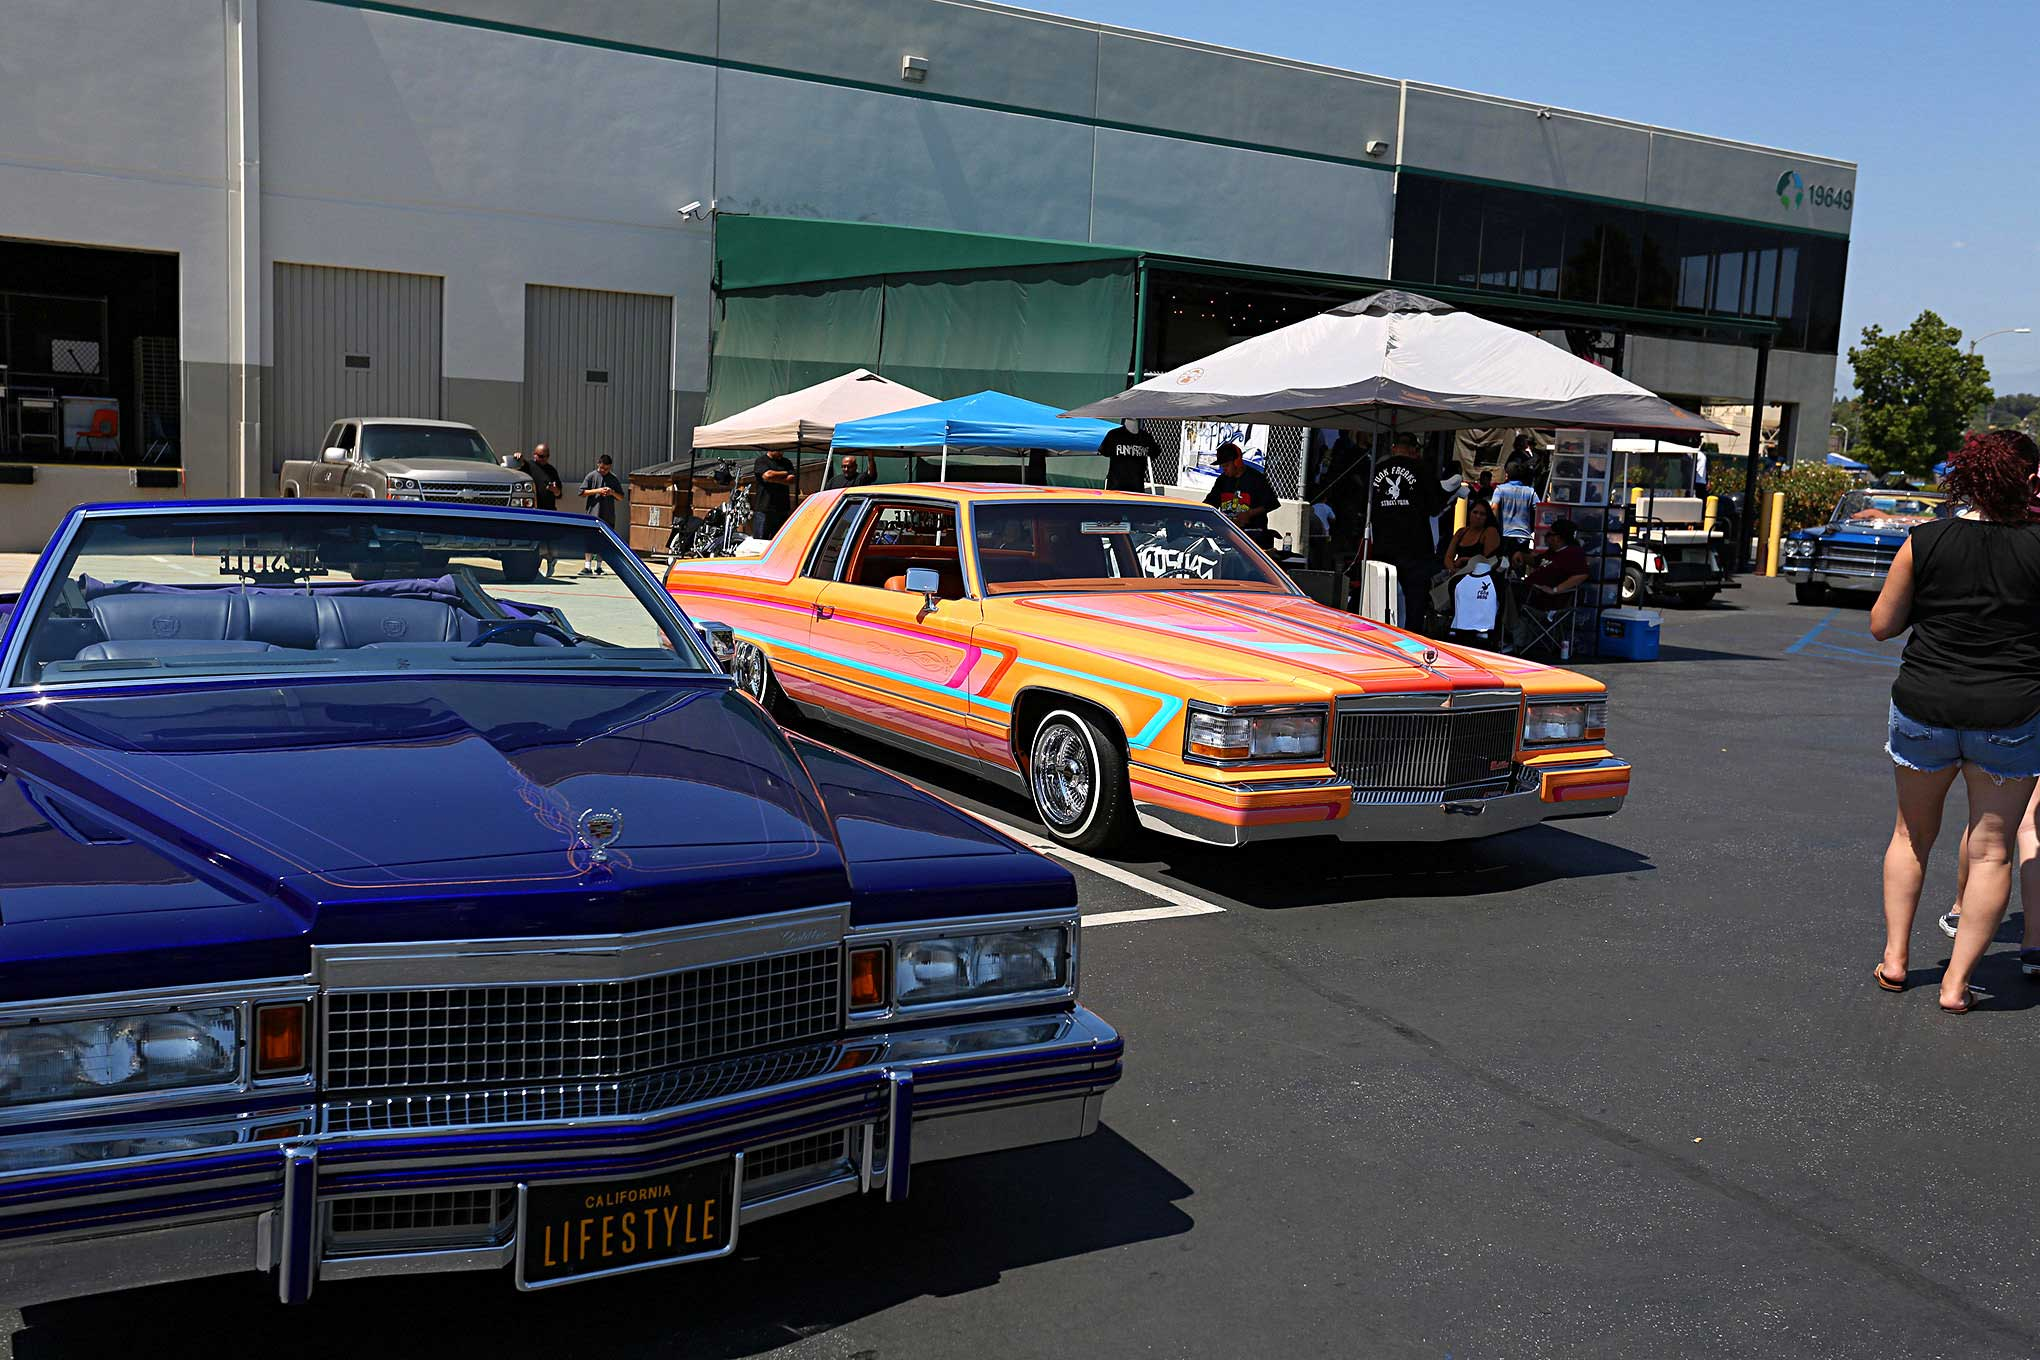 Lifestyle Car Club at Cadillac Fest 7